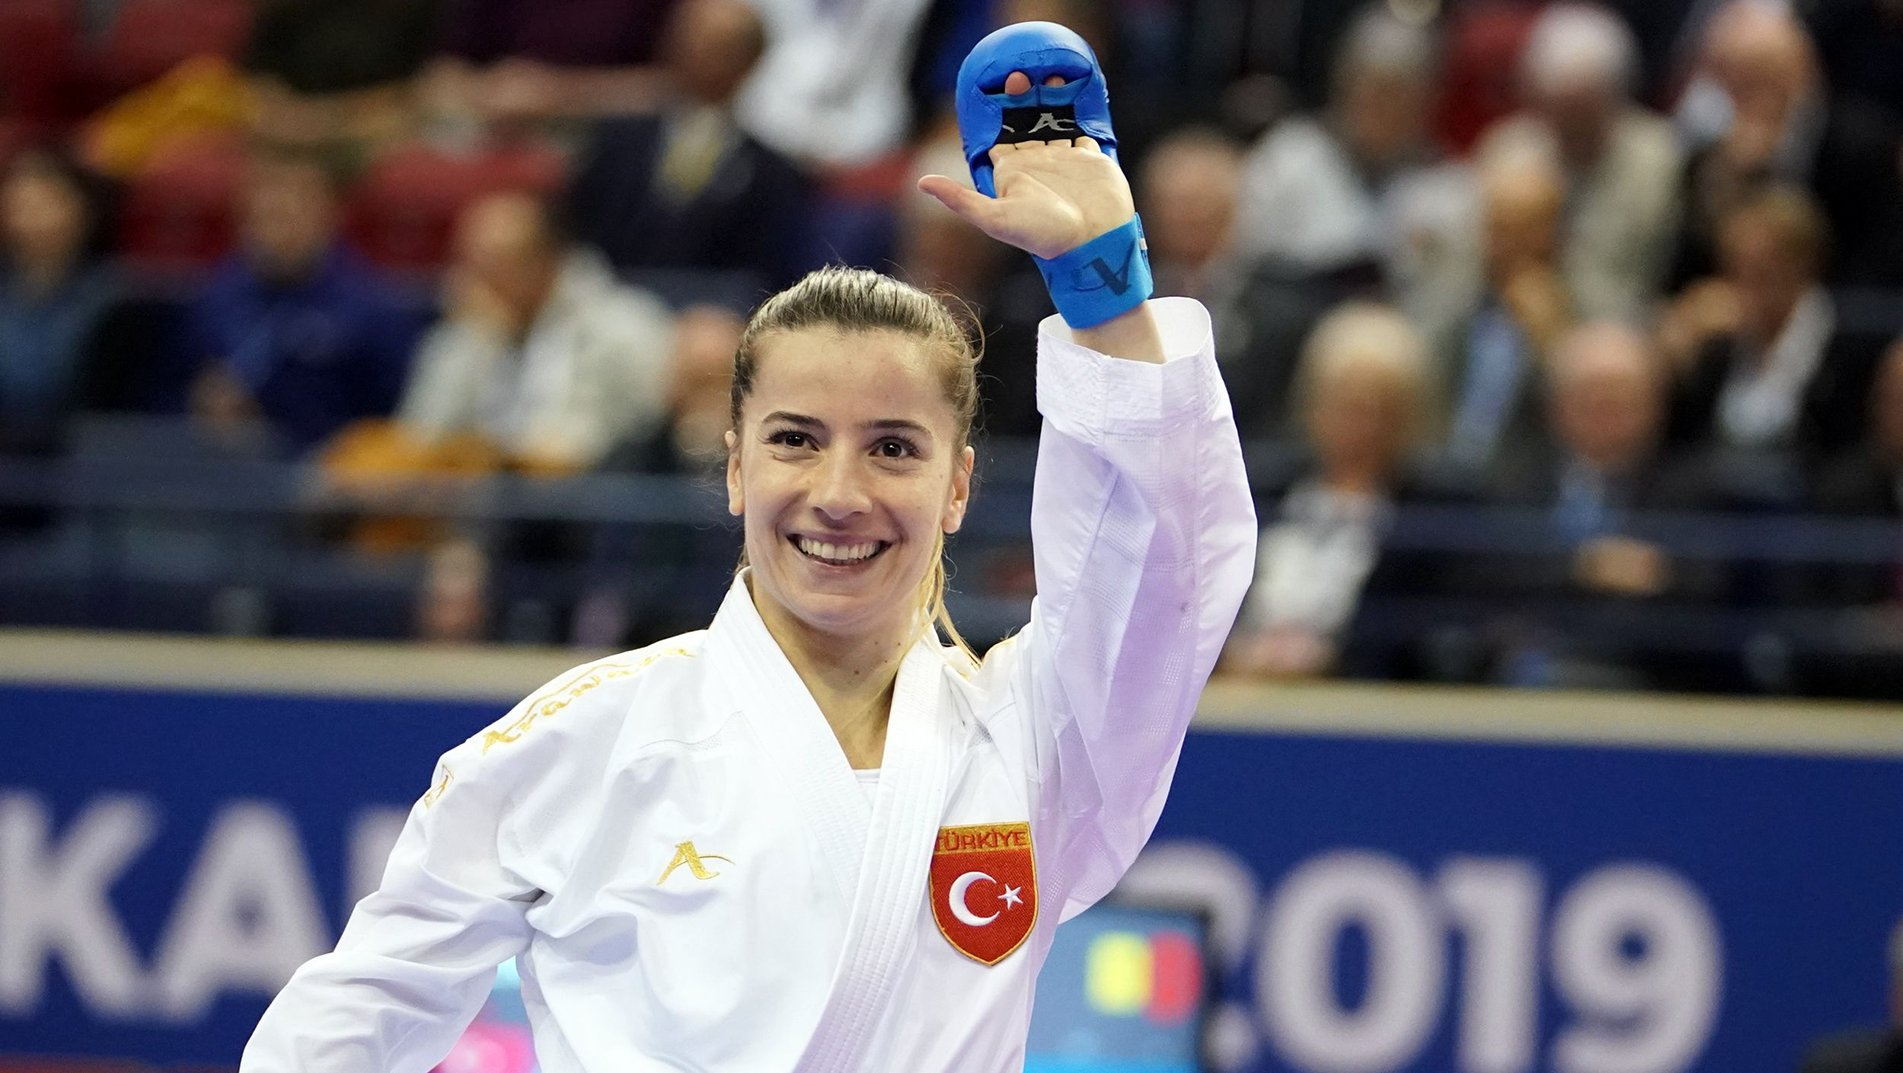 Turkish domination in day 1 of Karate 1-Series A Santiago